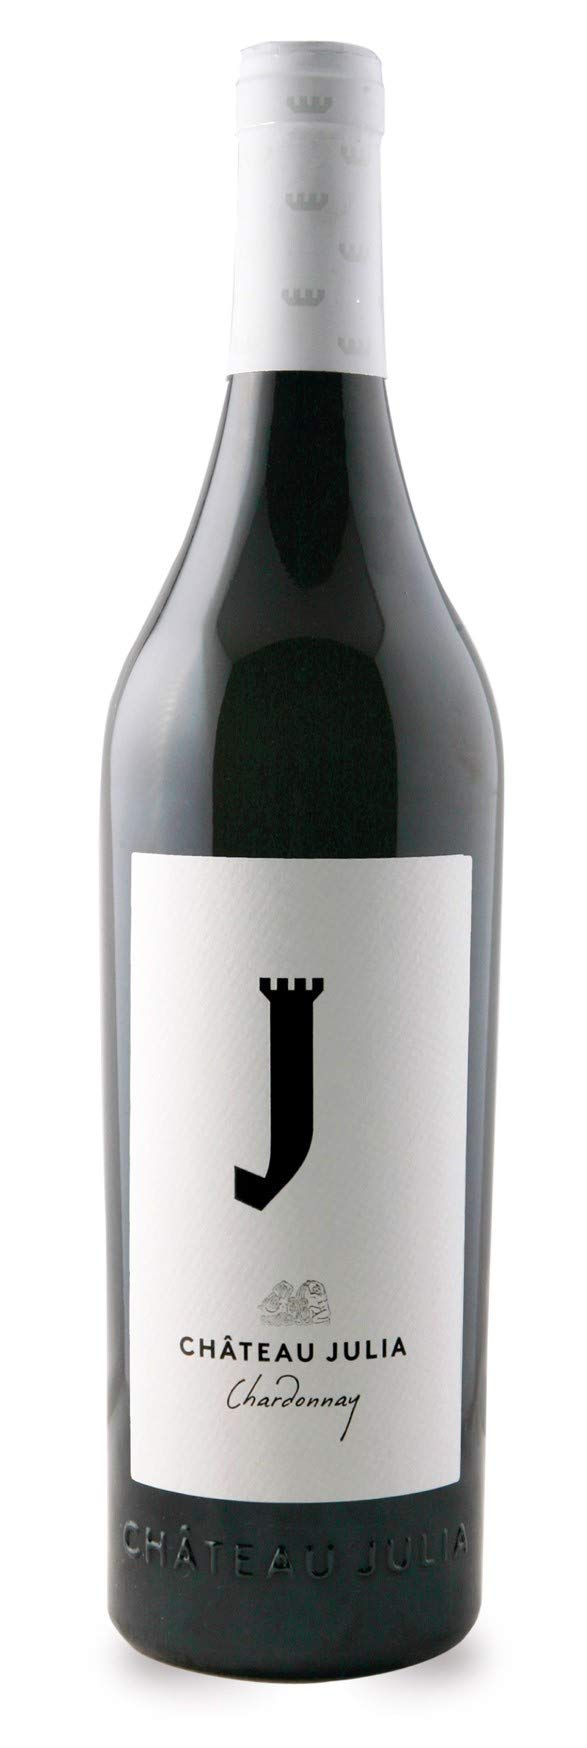 Costa-Lazaridi-Chateau-Julia-Chardonnay-750-ml